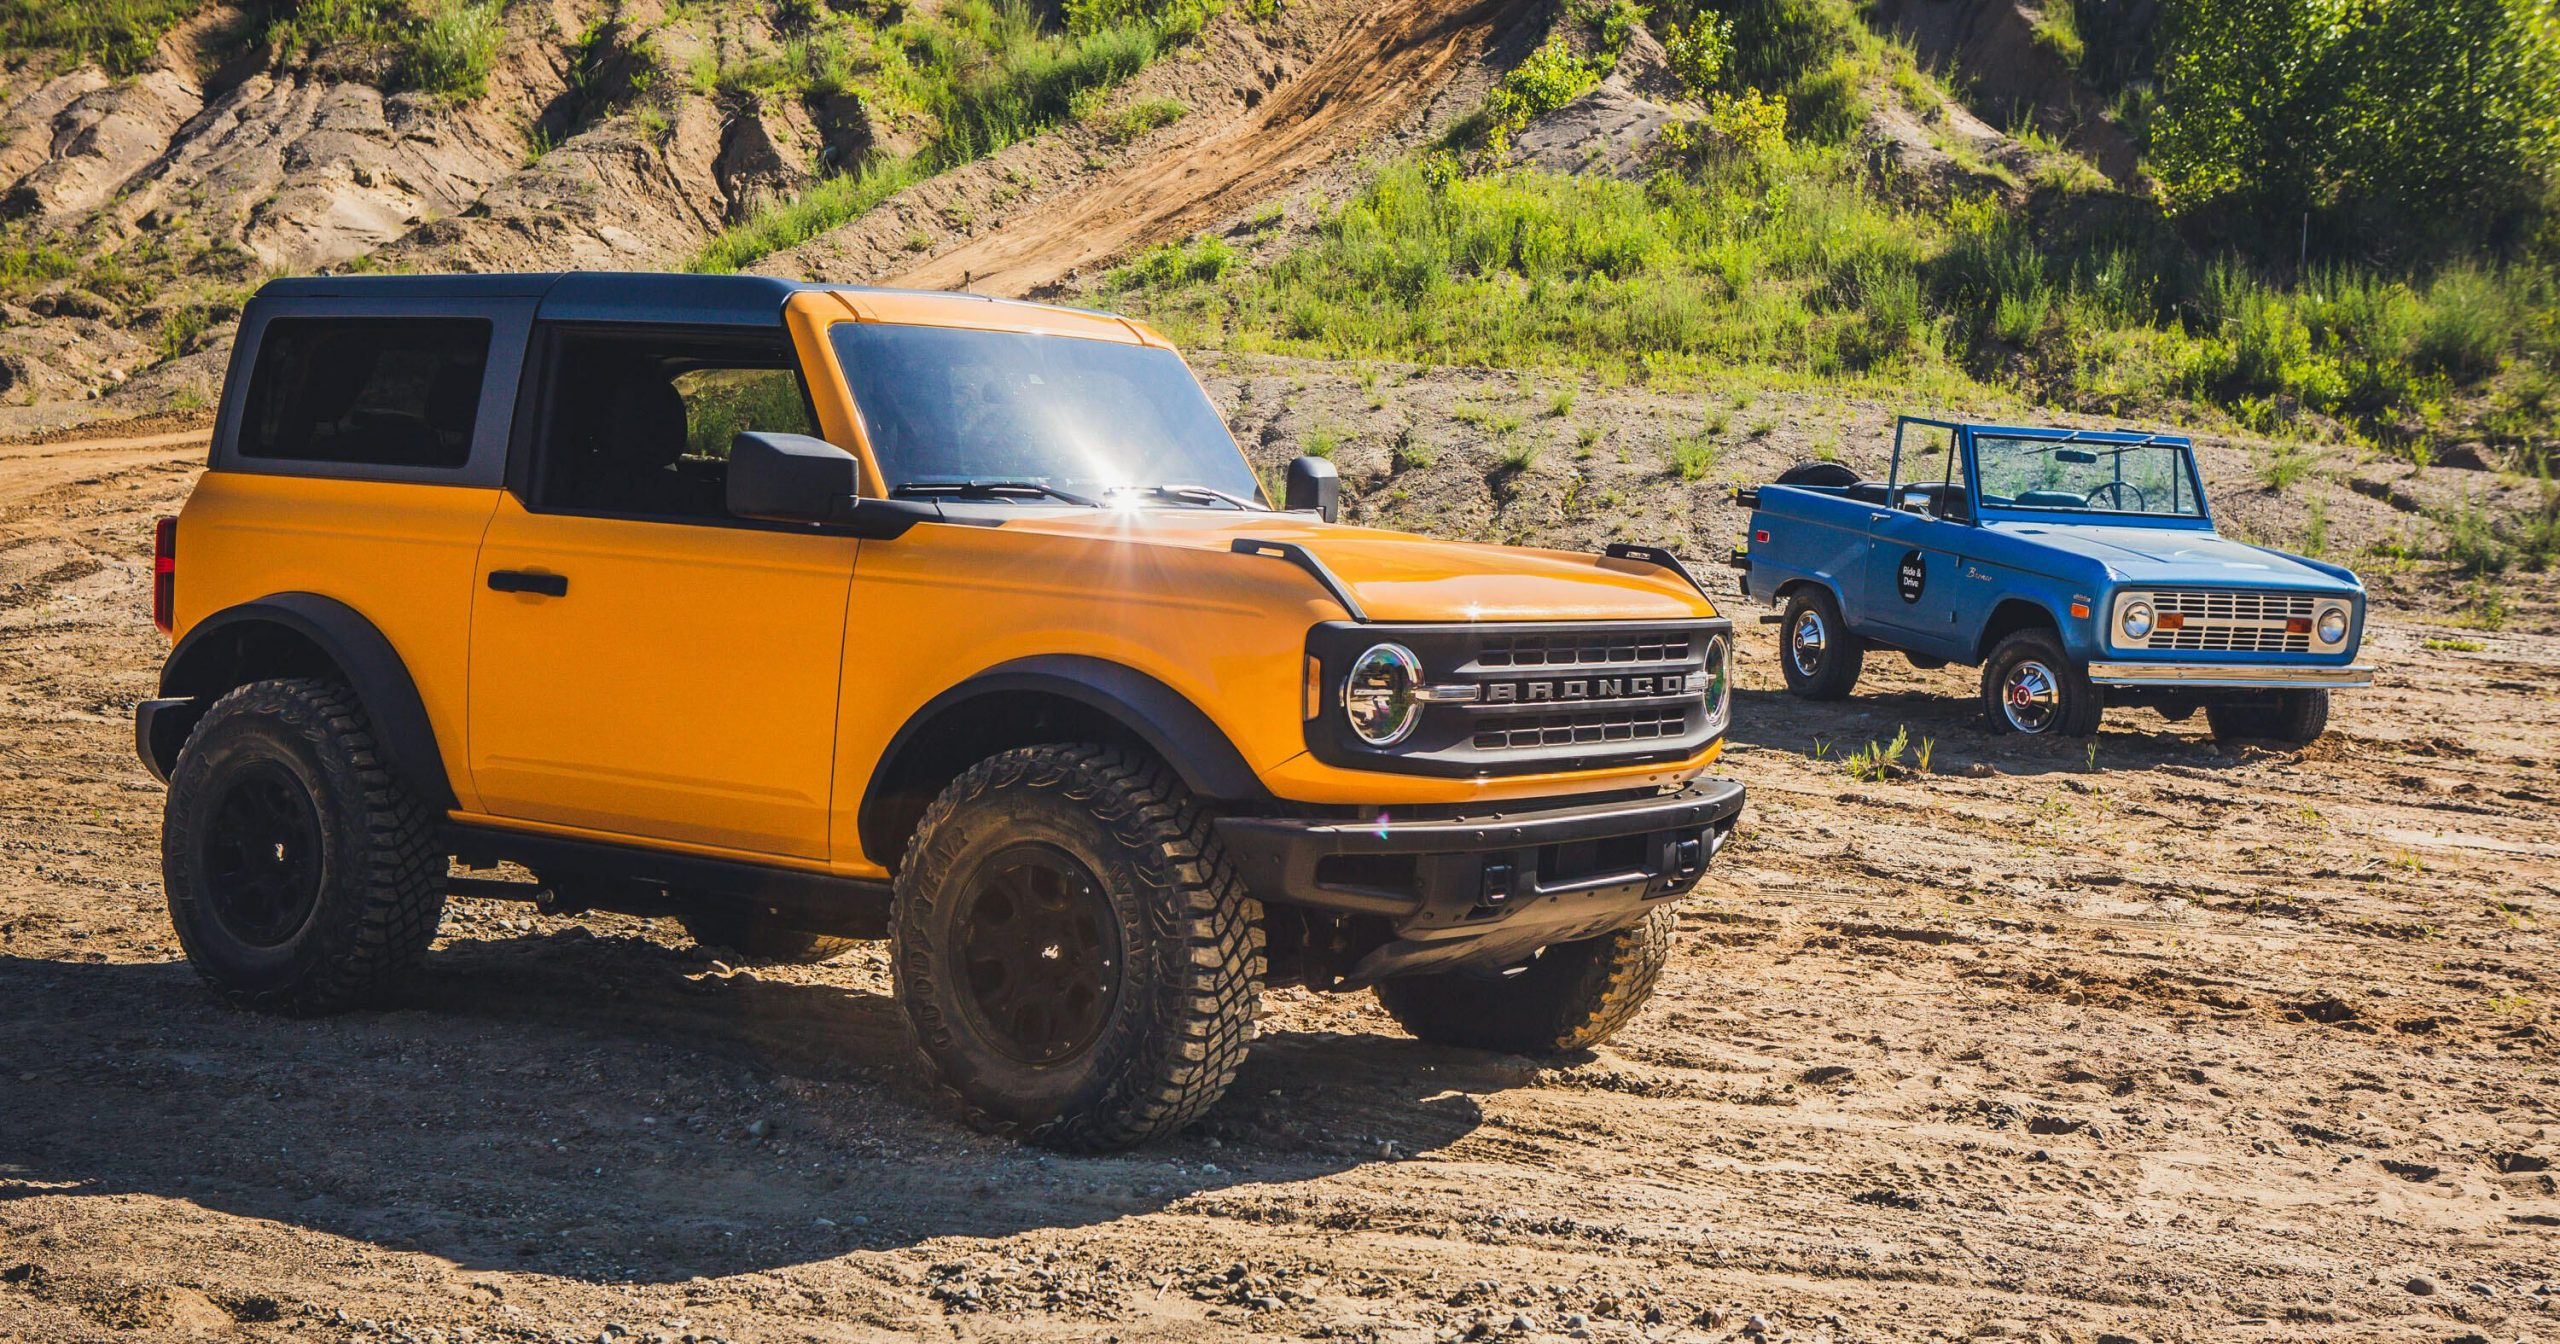 2021 Ford Bronco vs. the original first-gen: Oh, how far we've come